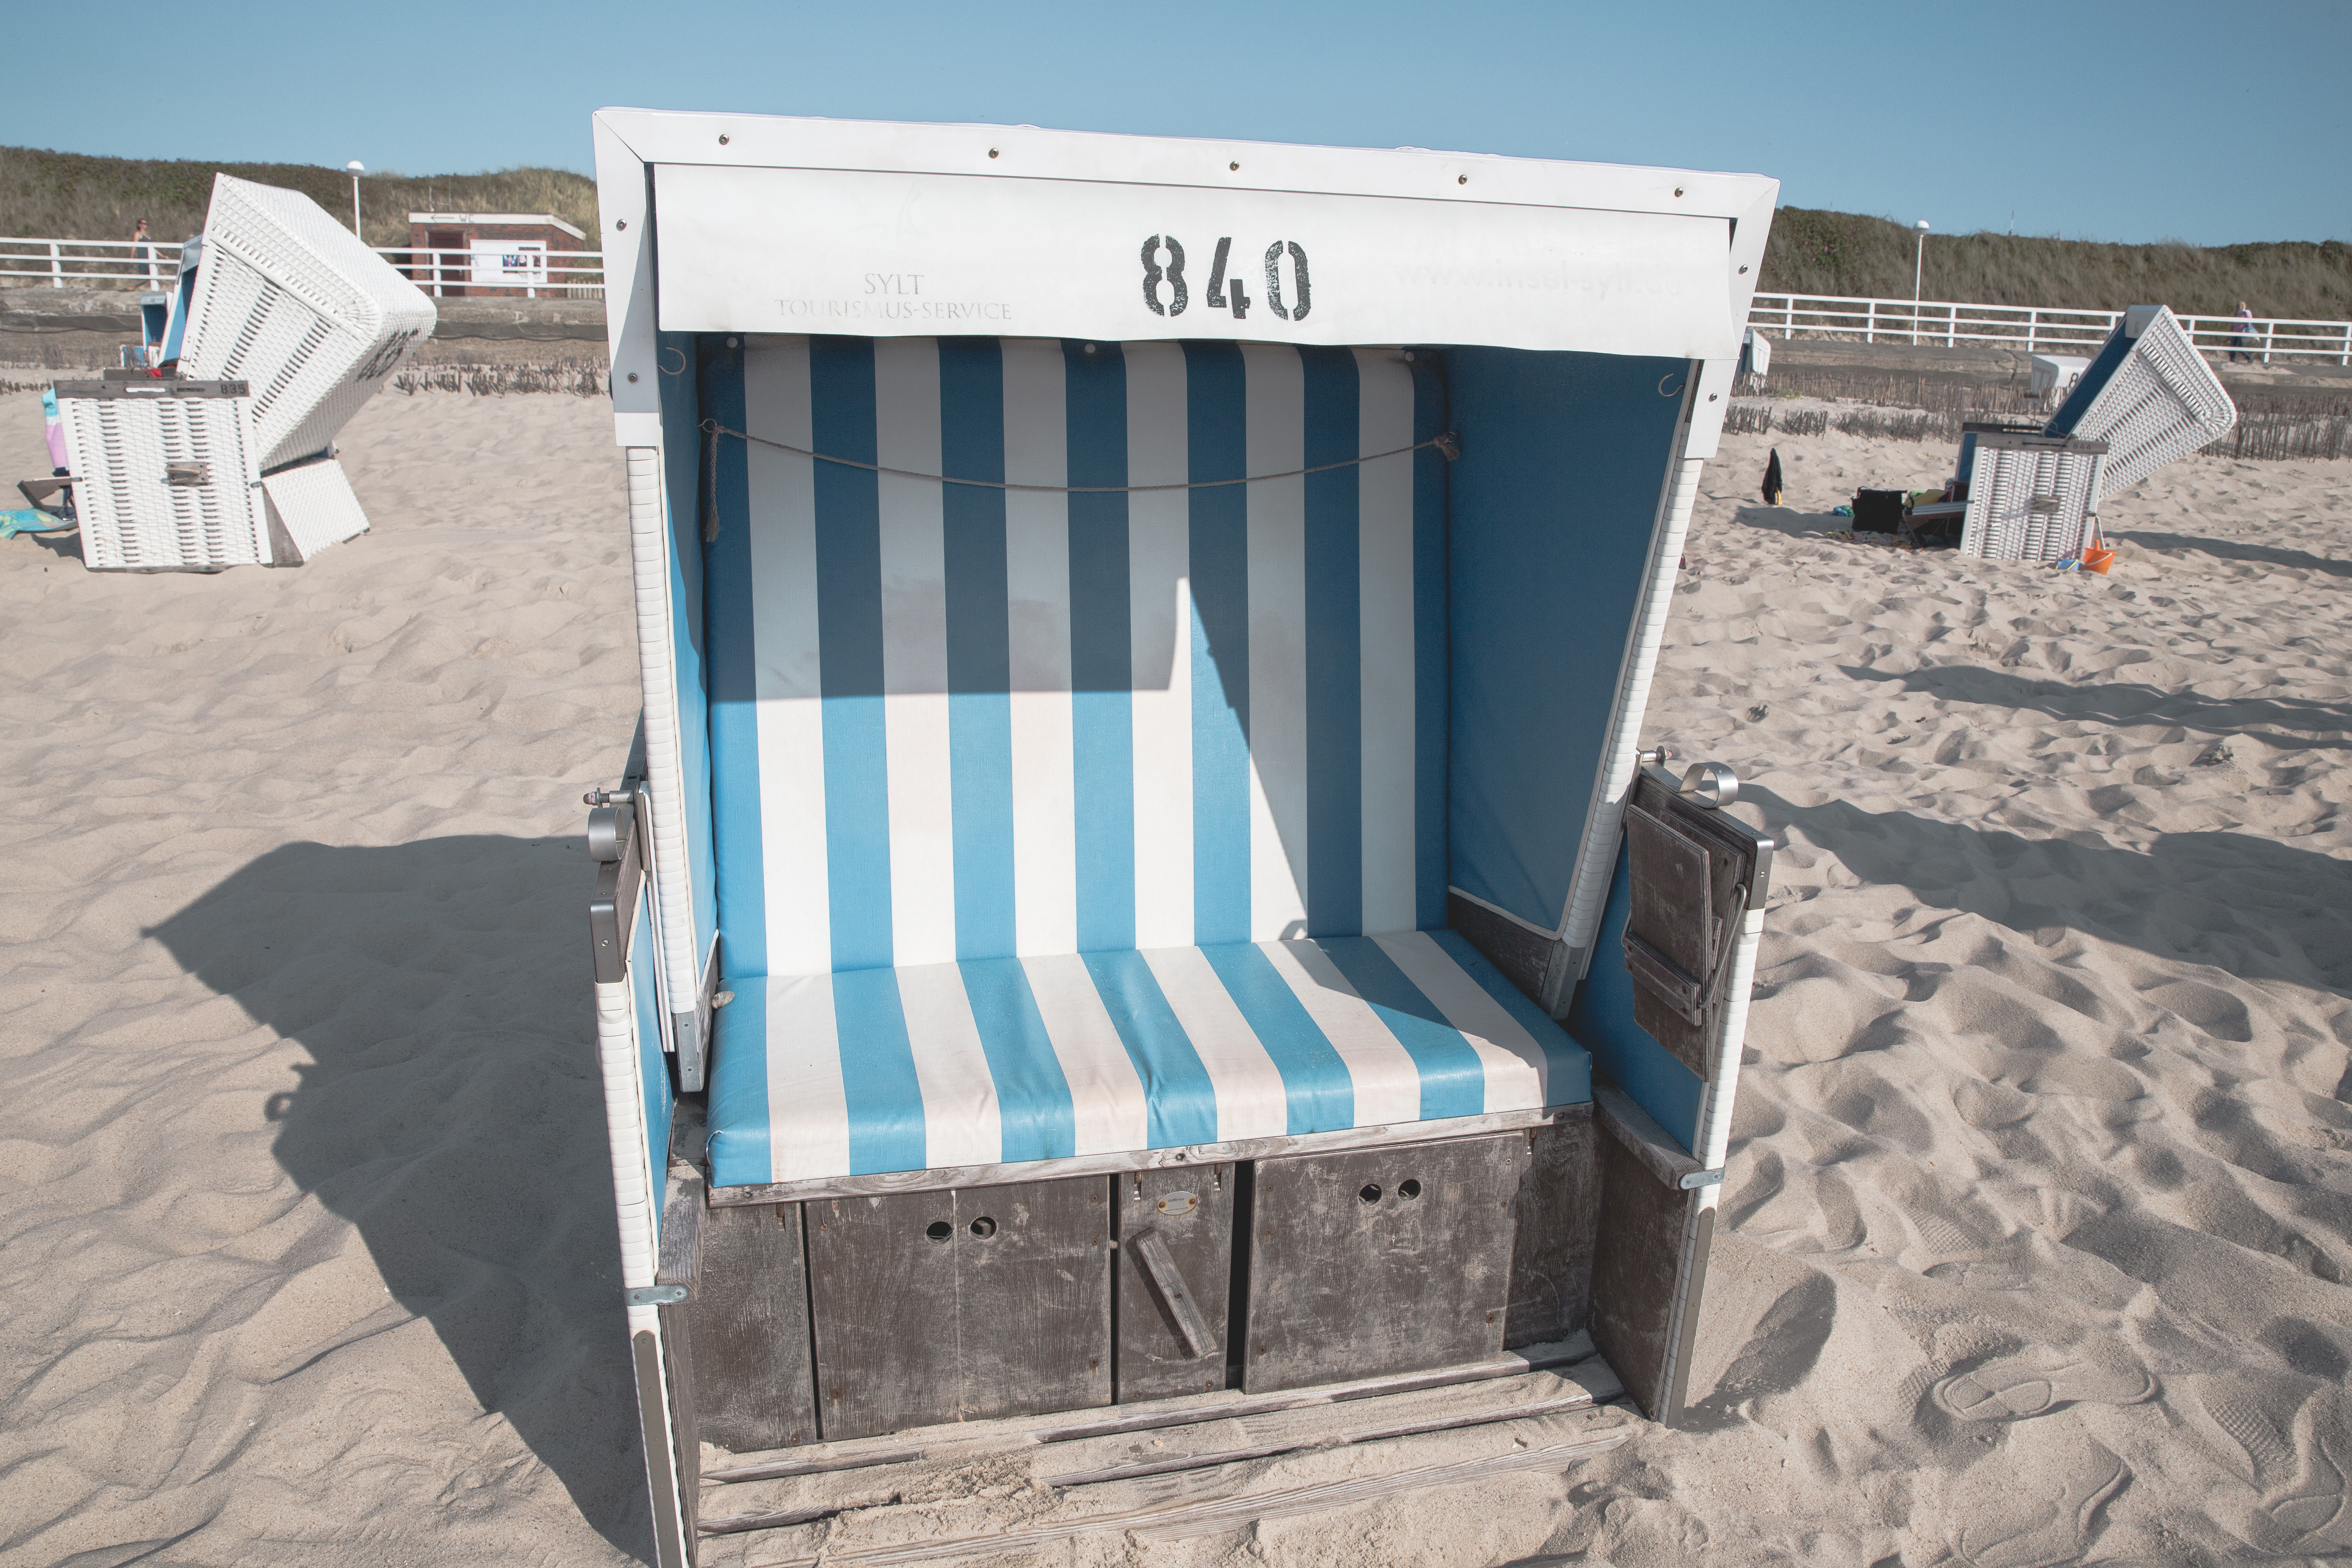 White beach chair, or strandkorb, on the beach on Sylt, an island in northern Germany